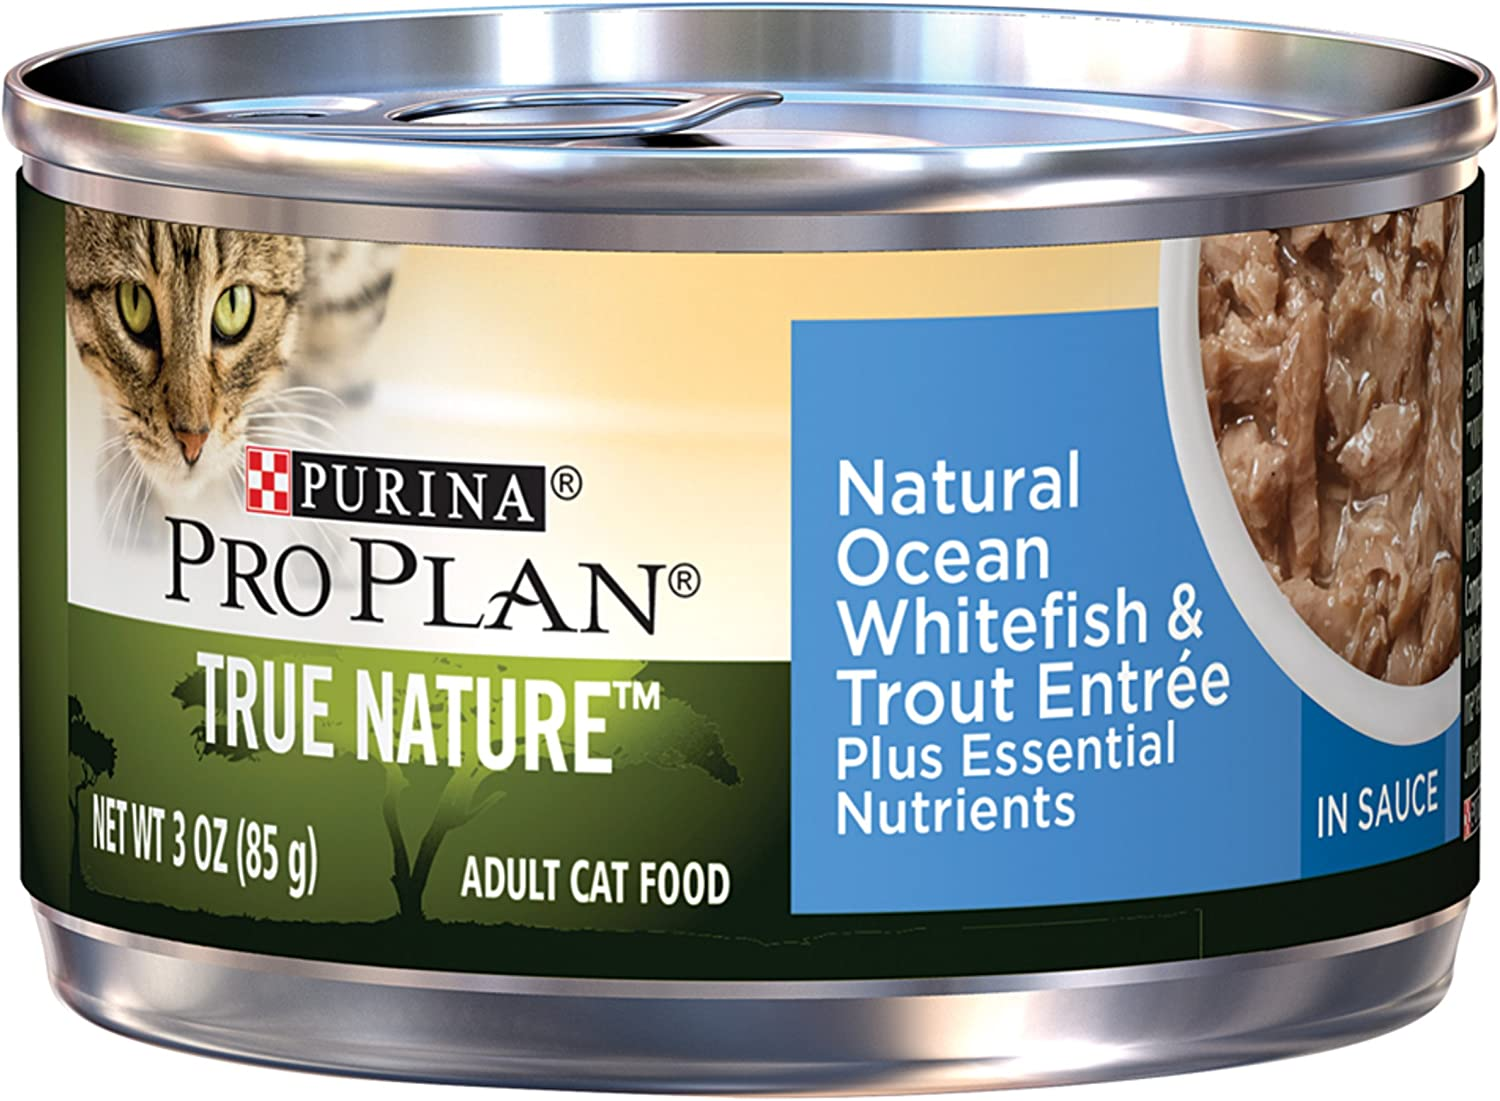 Purina Pro Plan Wet Cat Food, Tue Nature, Natural Ocean Whitefish & Trout Entrée, 3Ounce Can, Pack of 24